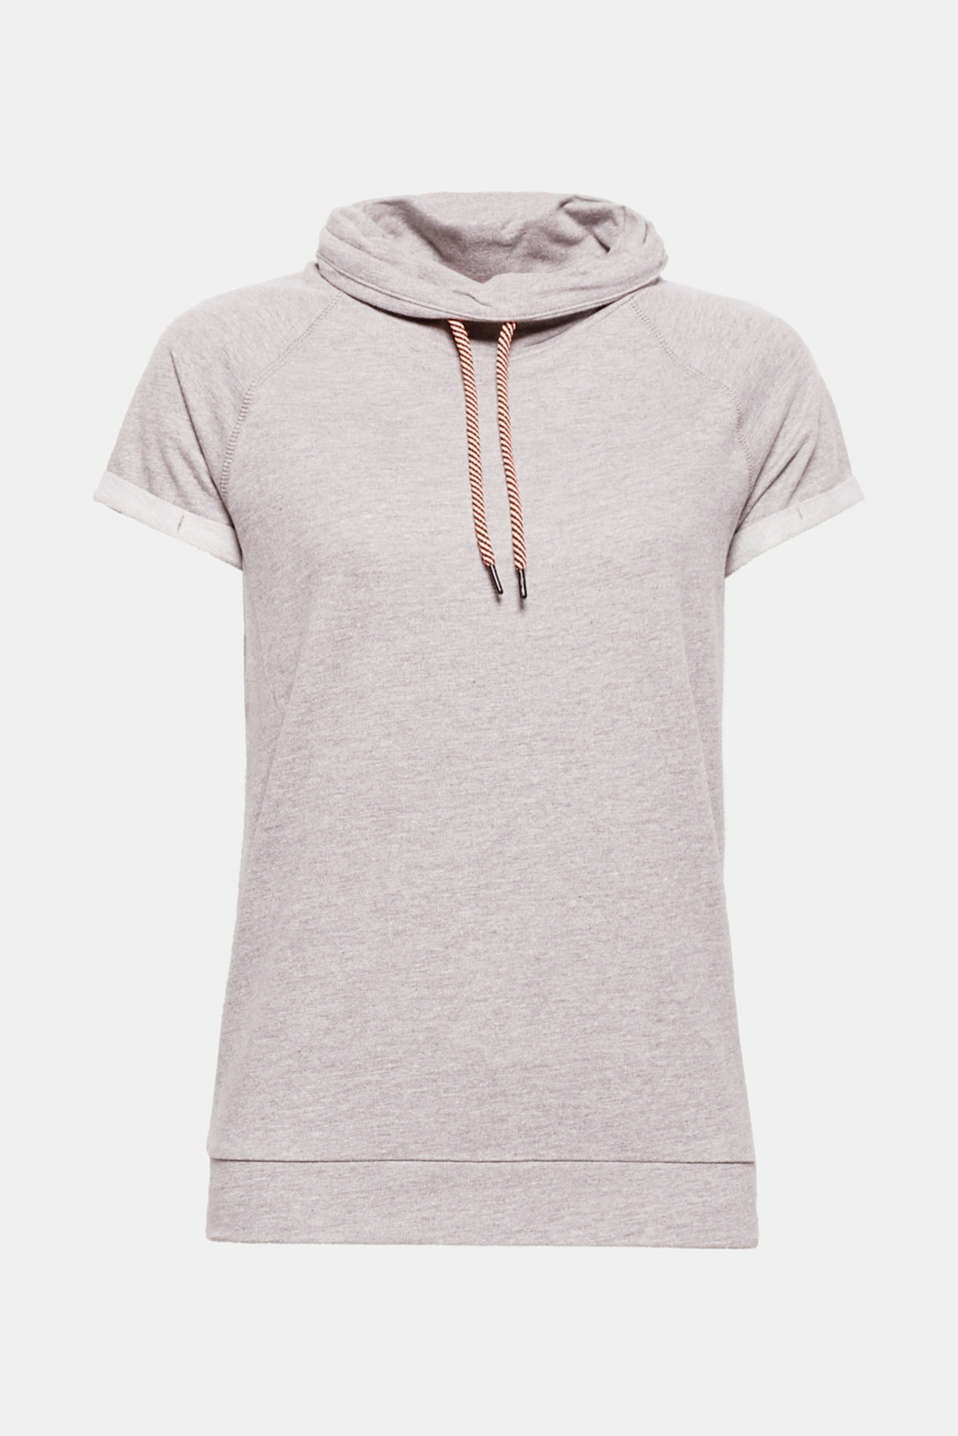 Lightweight and laid-back: This melange sweatshirt owes its summery look to its short sleeves and wide, loosely draped collar with two-tone drawstring ties.